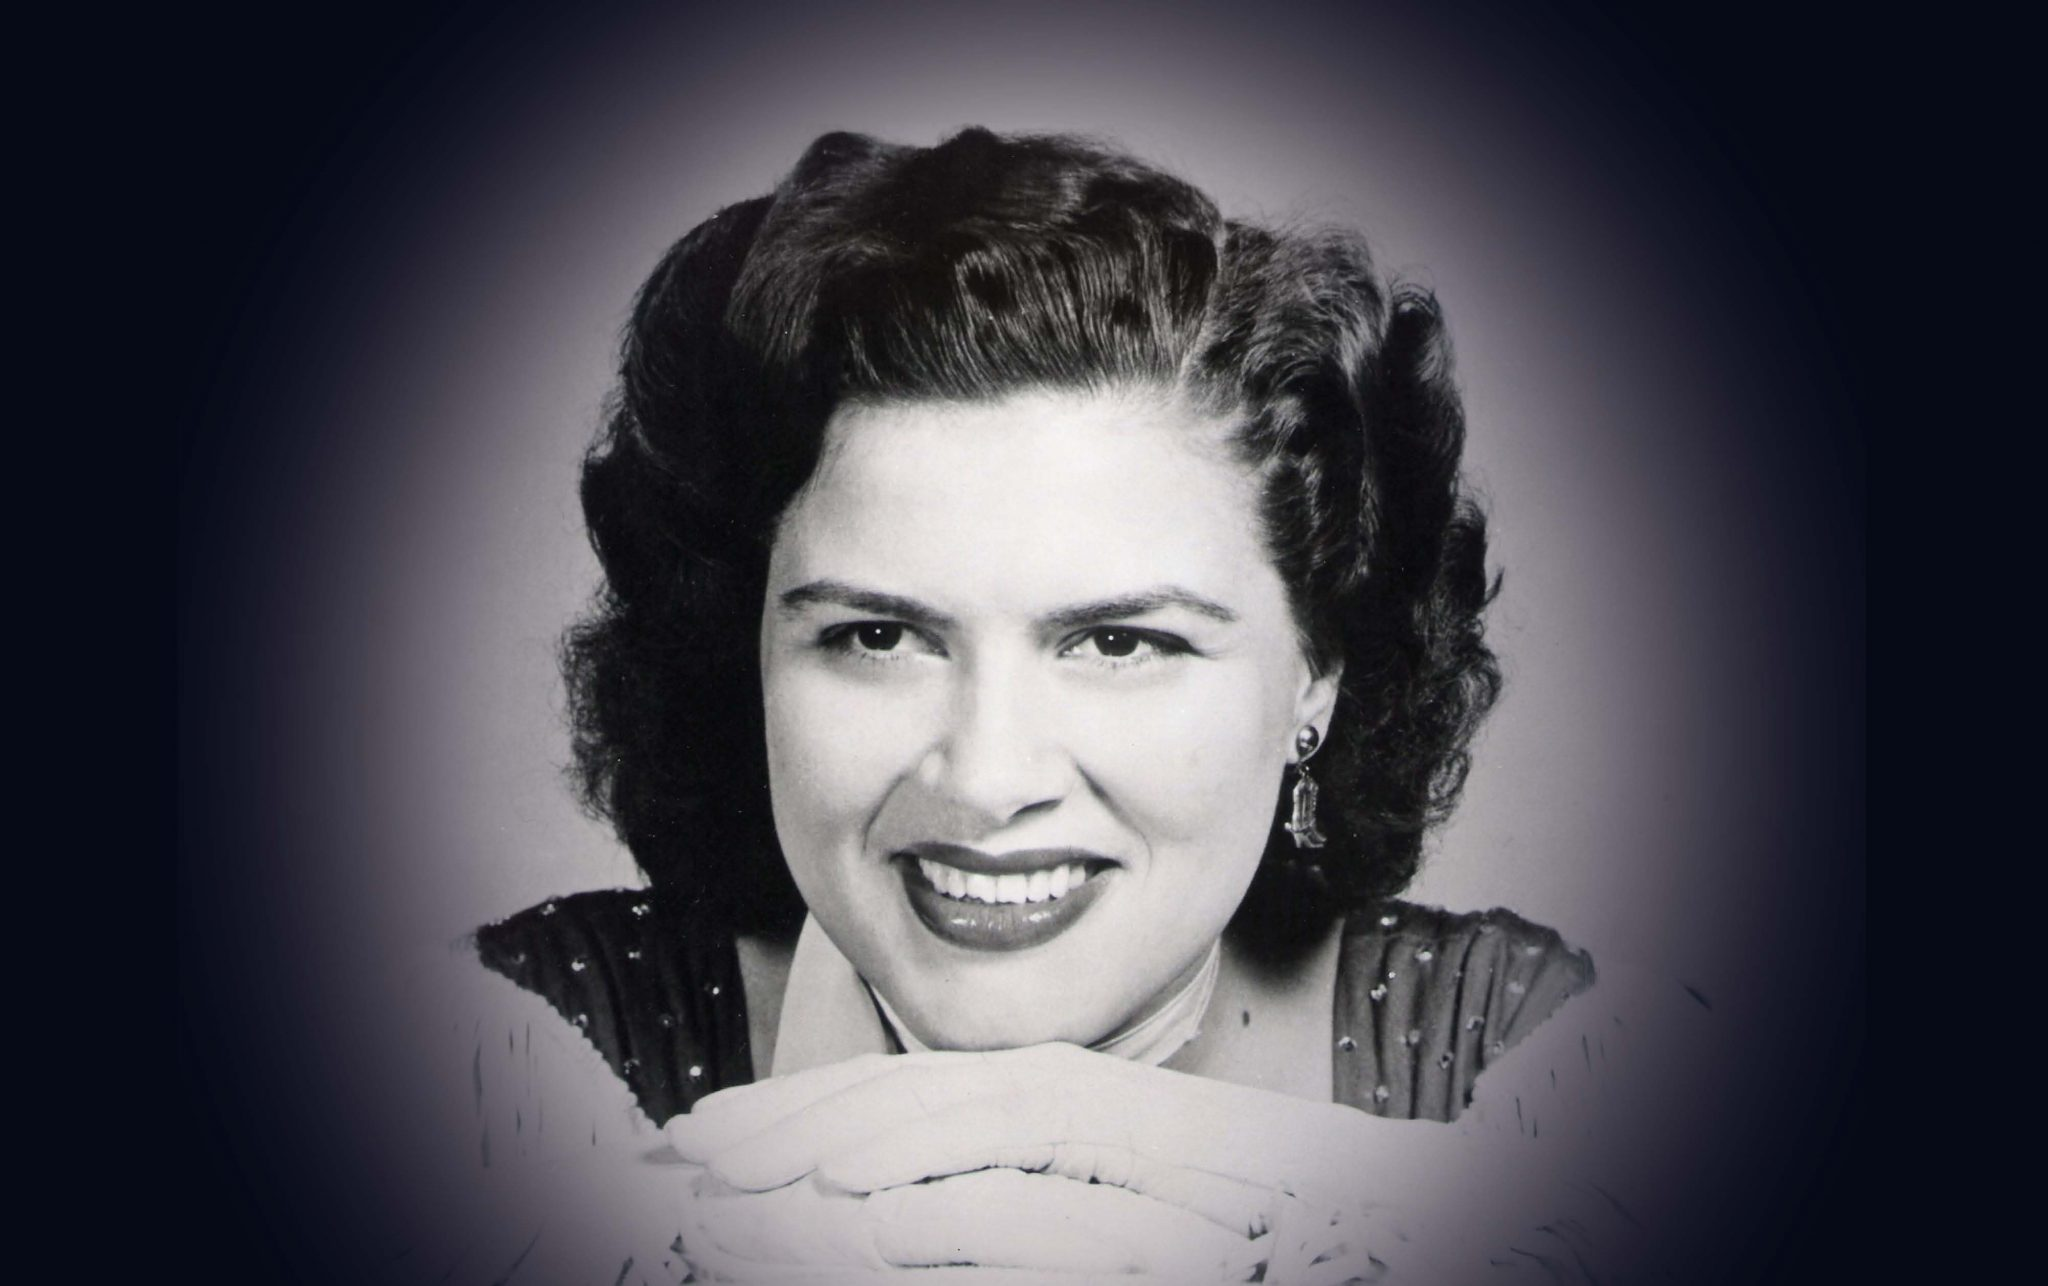 PAST EVENT: A Closer Walk With Patsy Cline – The Grand Theatre (Ellsworth, ME) June 22 – July 1, 2018